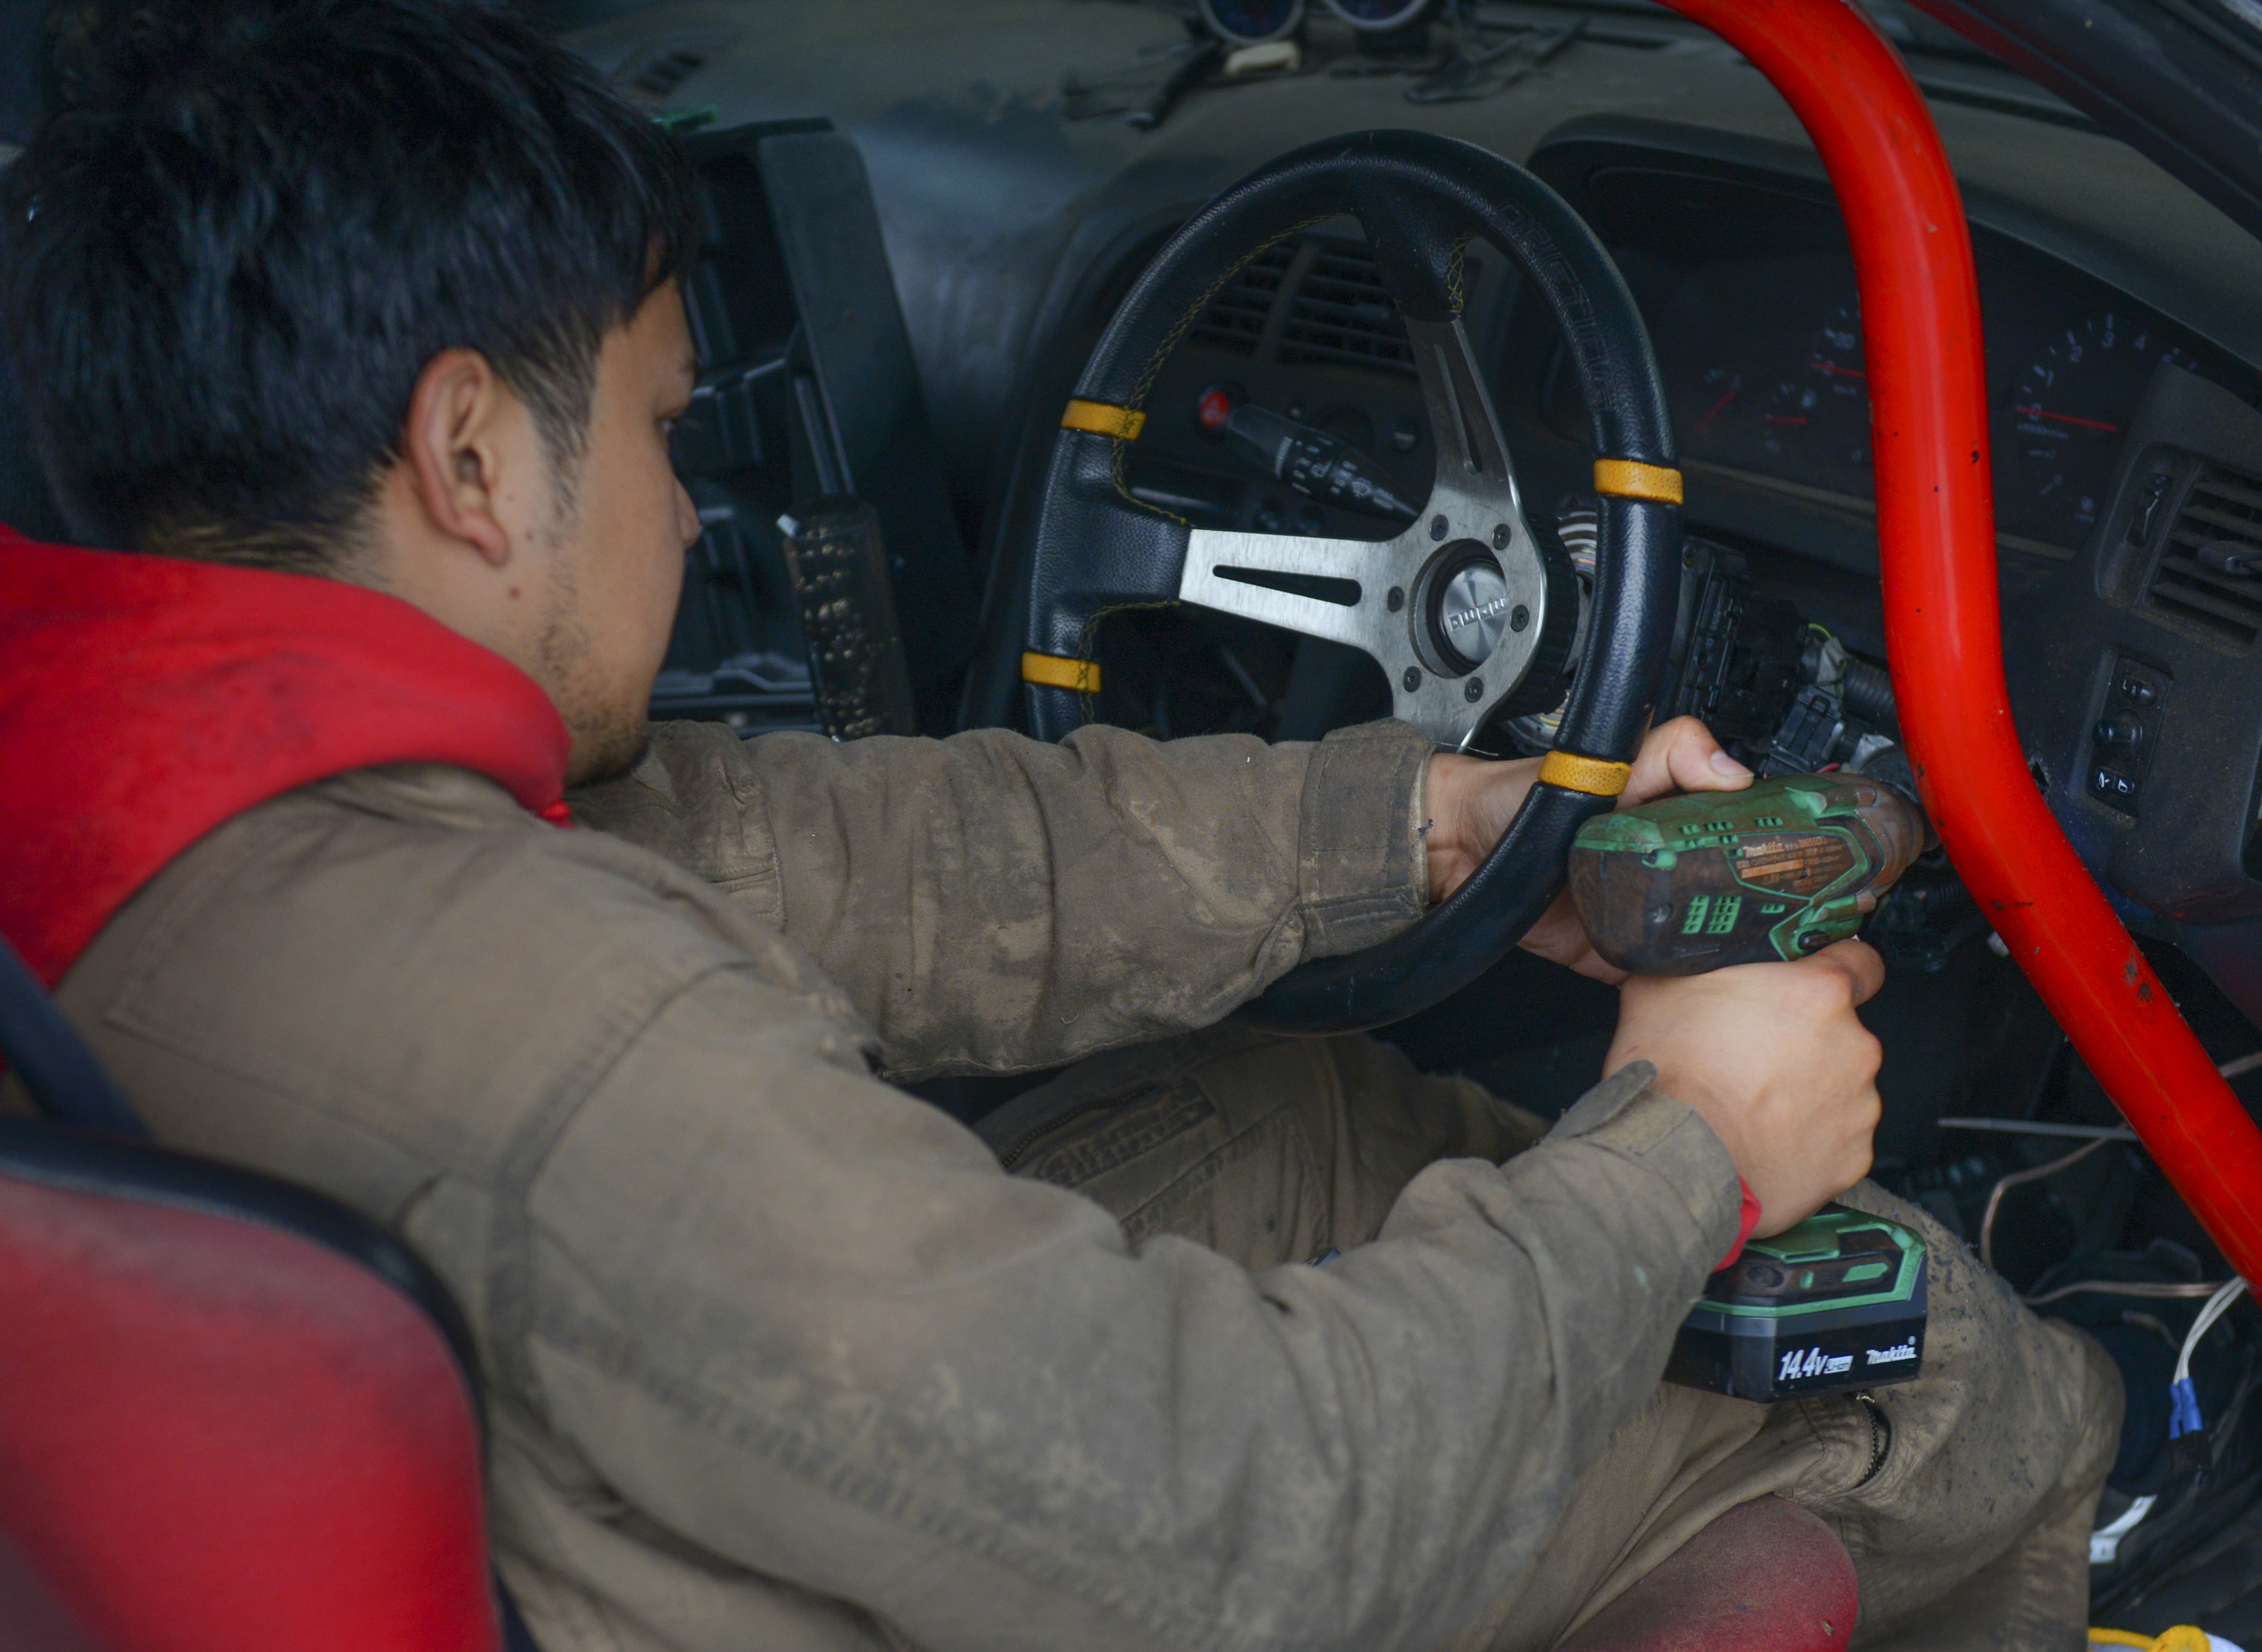 Angelo Manalastes drills a hole for the starter switch in his drift car at Ebisu Circuit, Japan, Nov. 14, 2015. Manalastes and a group of Yokota Airman spent two days at the fall drift festival at Ebisu, an event which attracts participants from around the world to drift. (U.S. Air Force photo by Airman 1st Class Elizabeth Baker/Released))